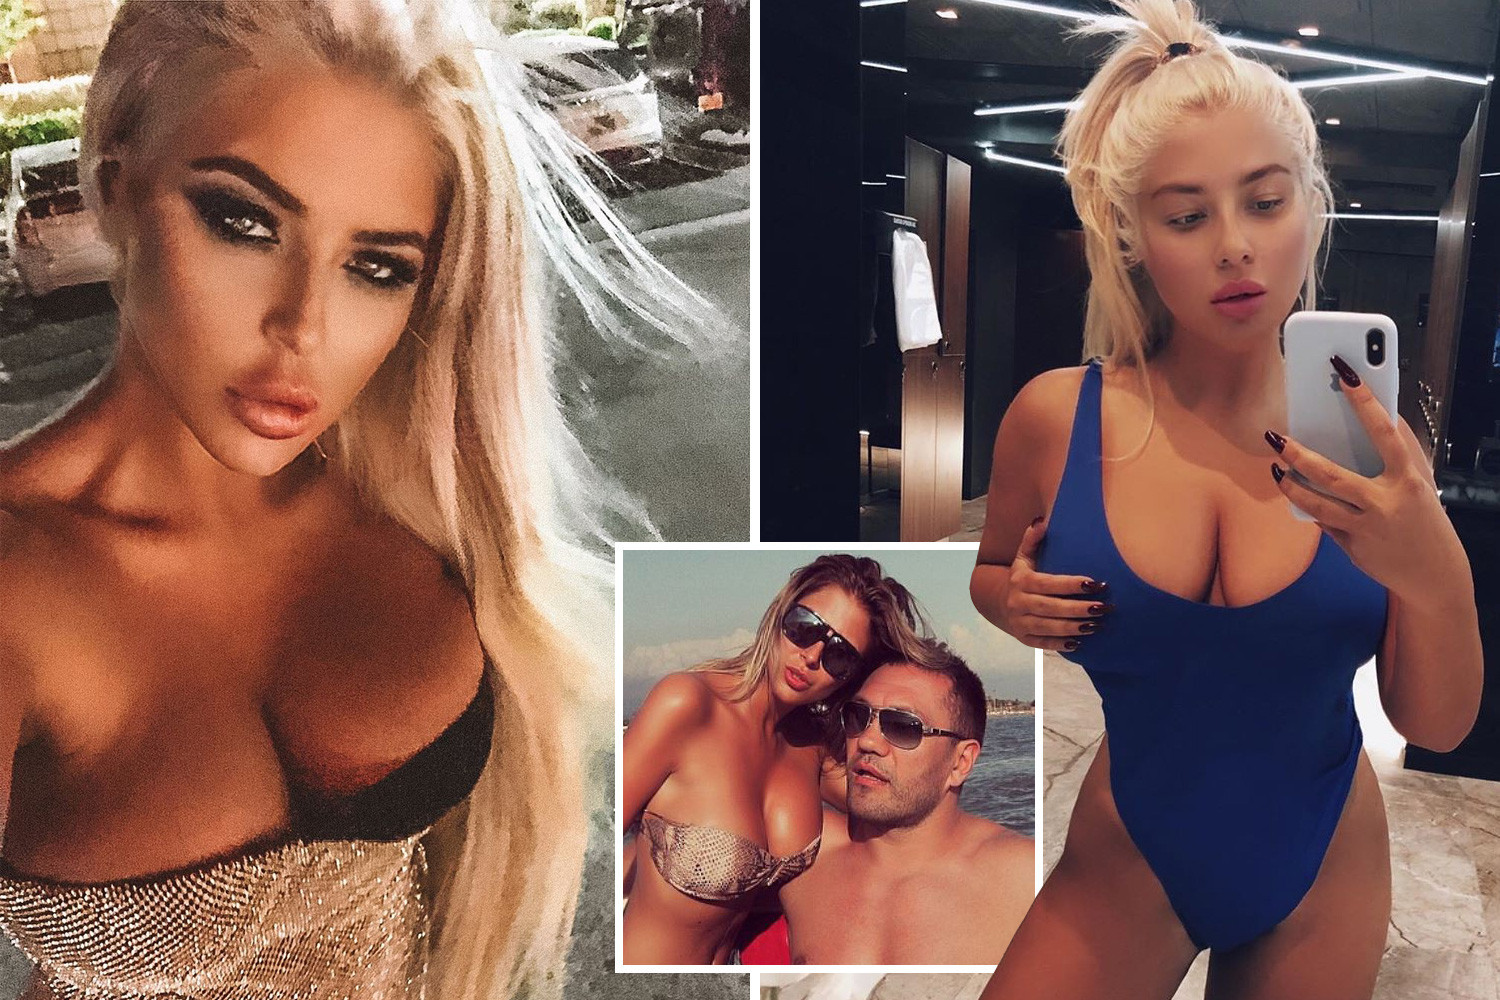 Kubrat Pulev's popstar girlfriend Andrea, who defended him for kissing  journalist, set to be ringside for Joshua fight – The US Sun